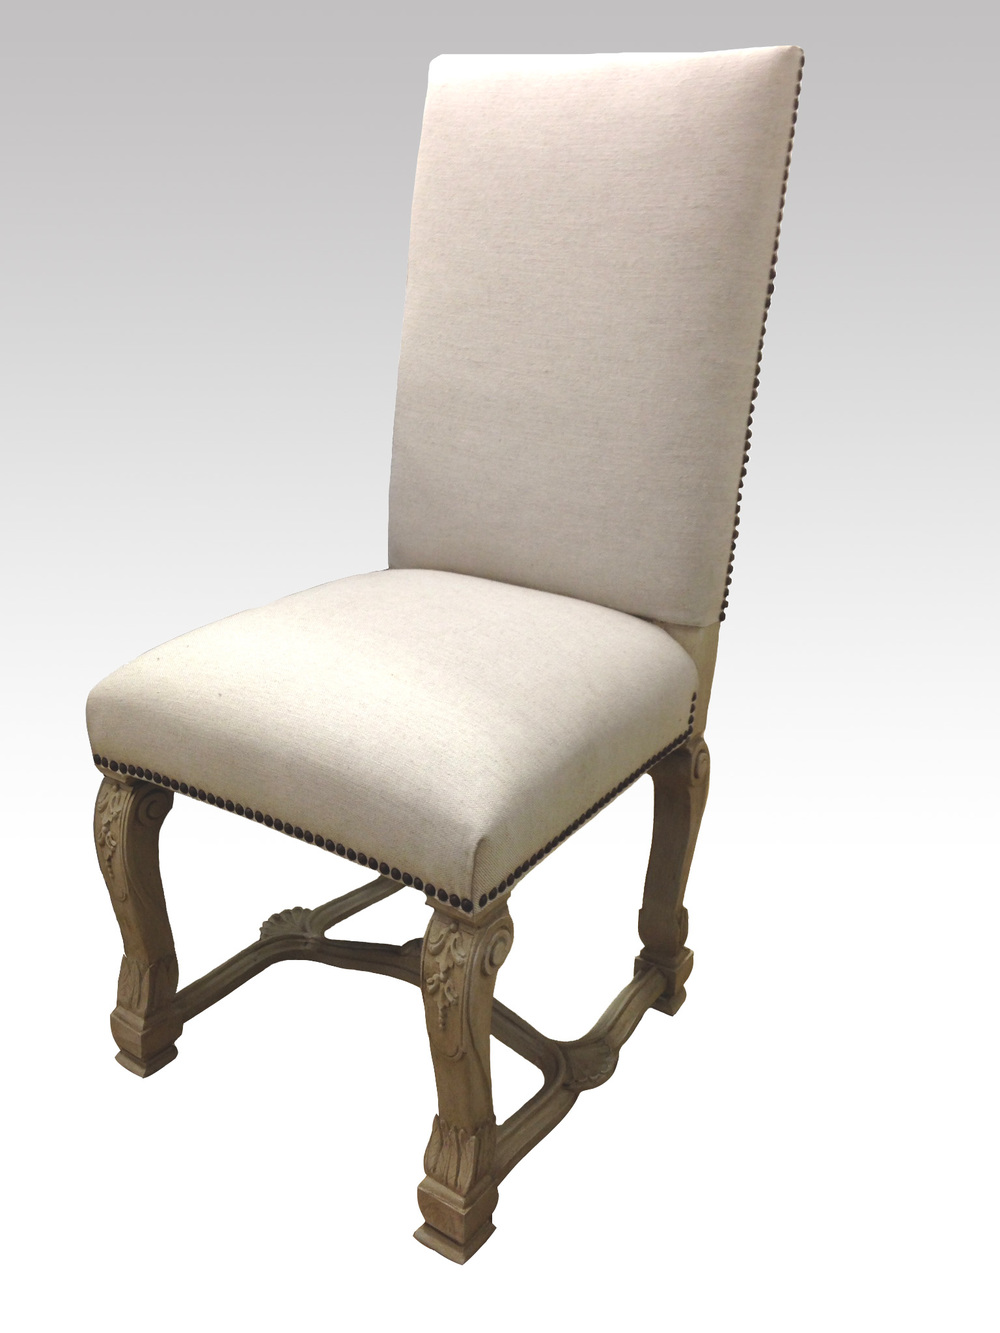 Dining chair 4.jpg